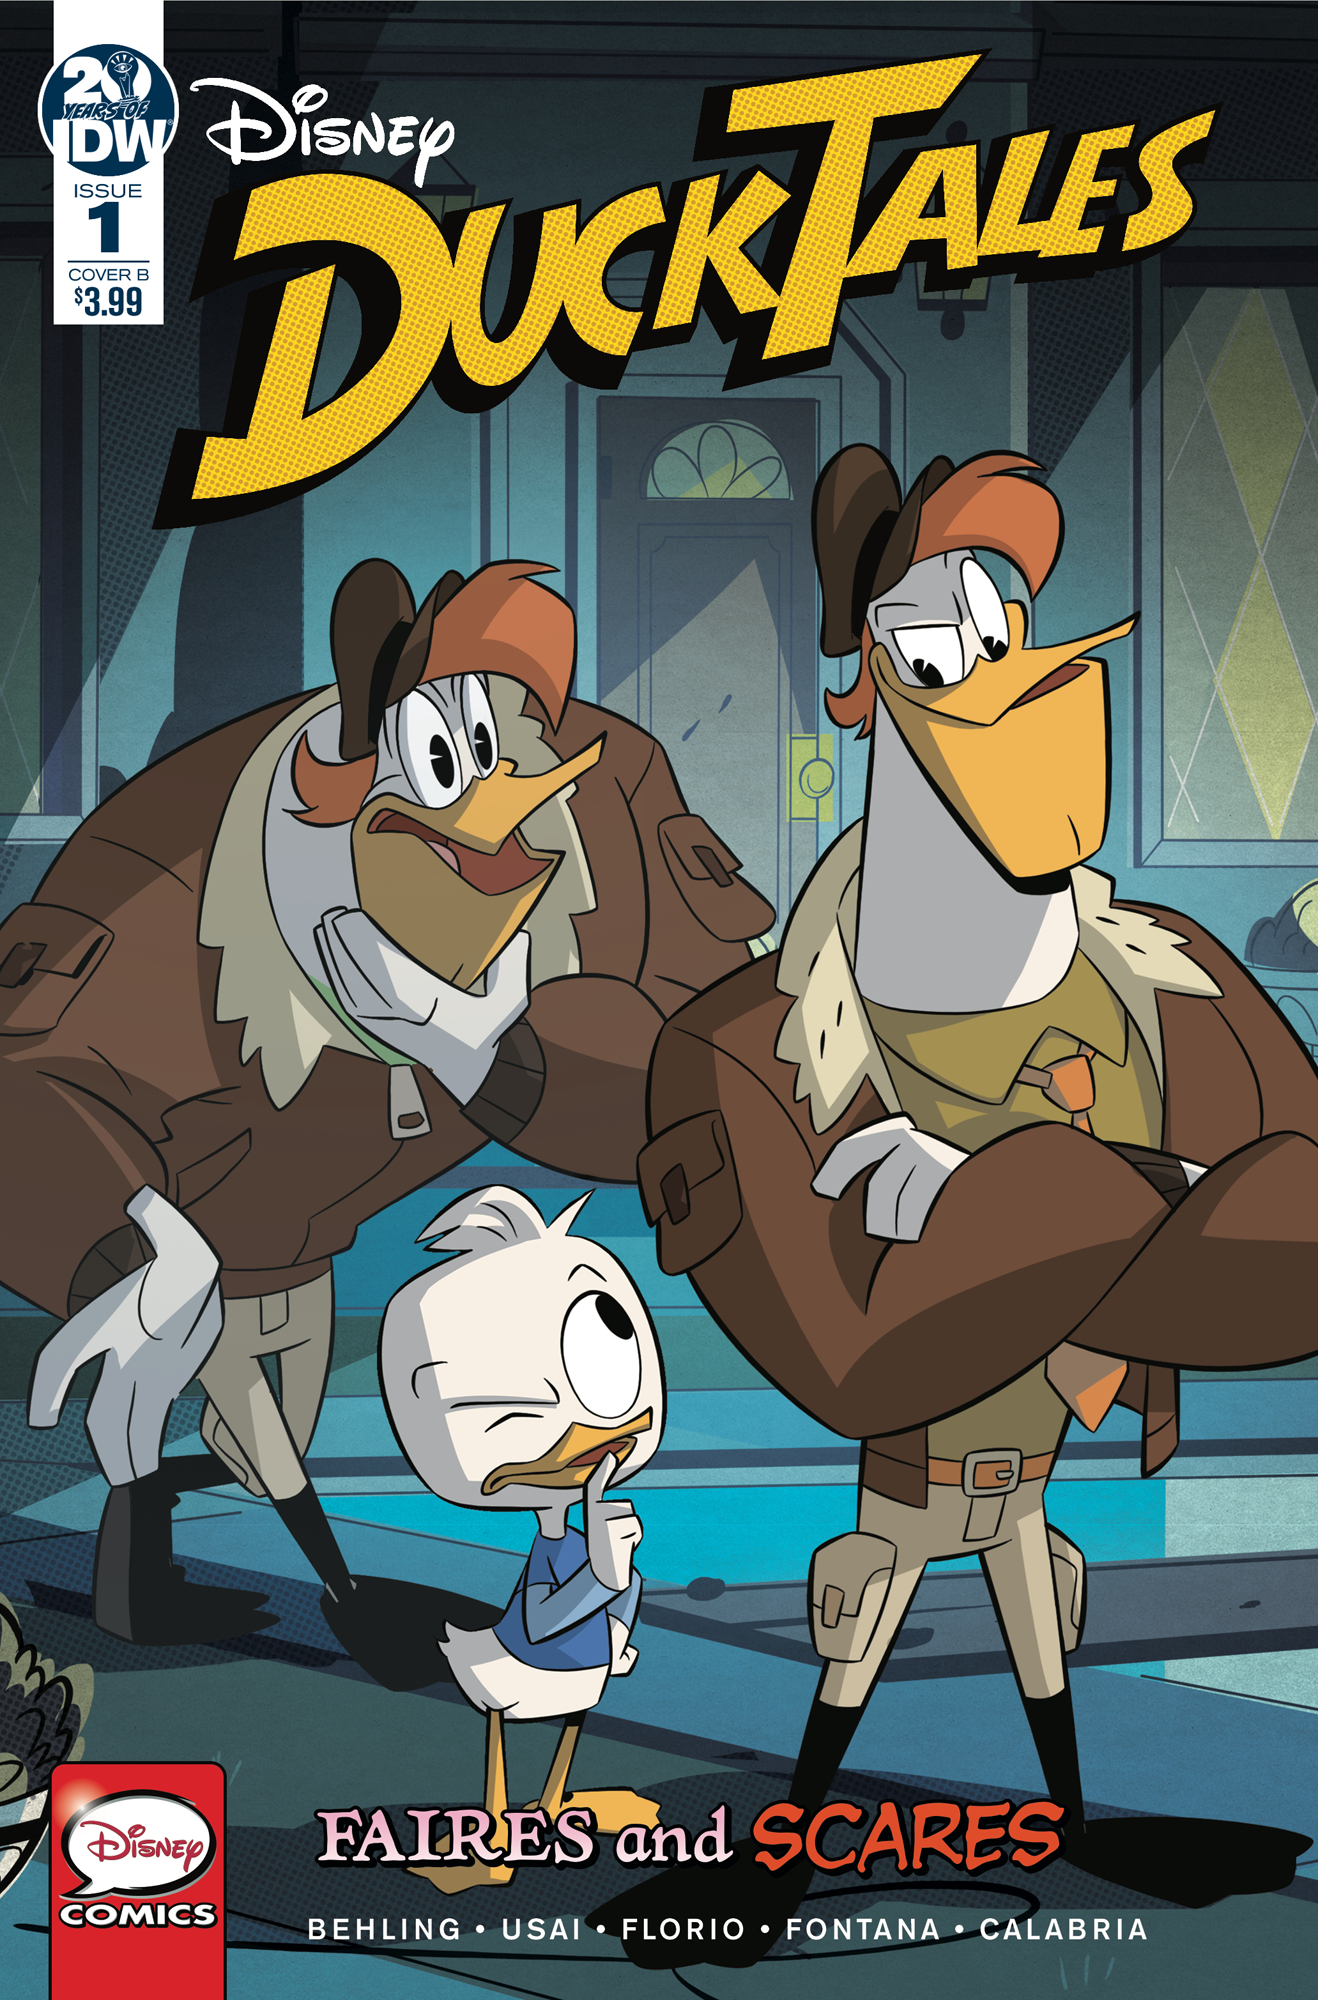 DUCKTALES FAIRES & SCARES #1 (OF 3) CVR B GHILLONE & STELLA